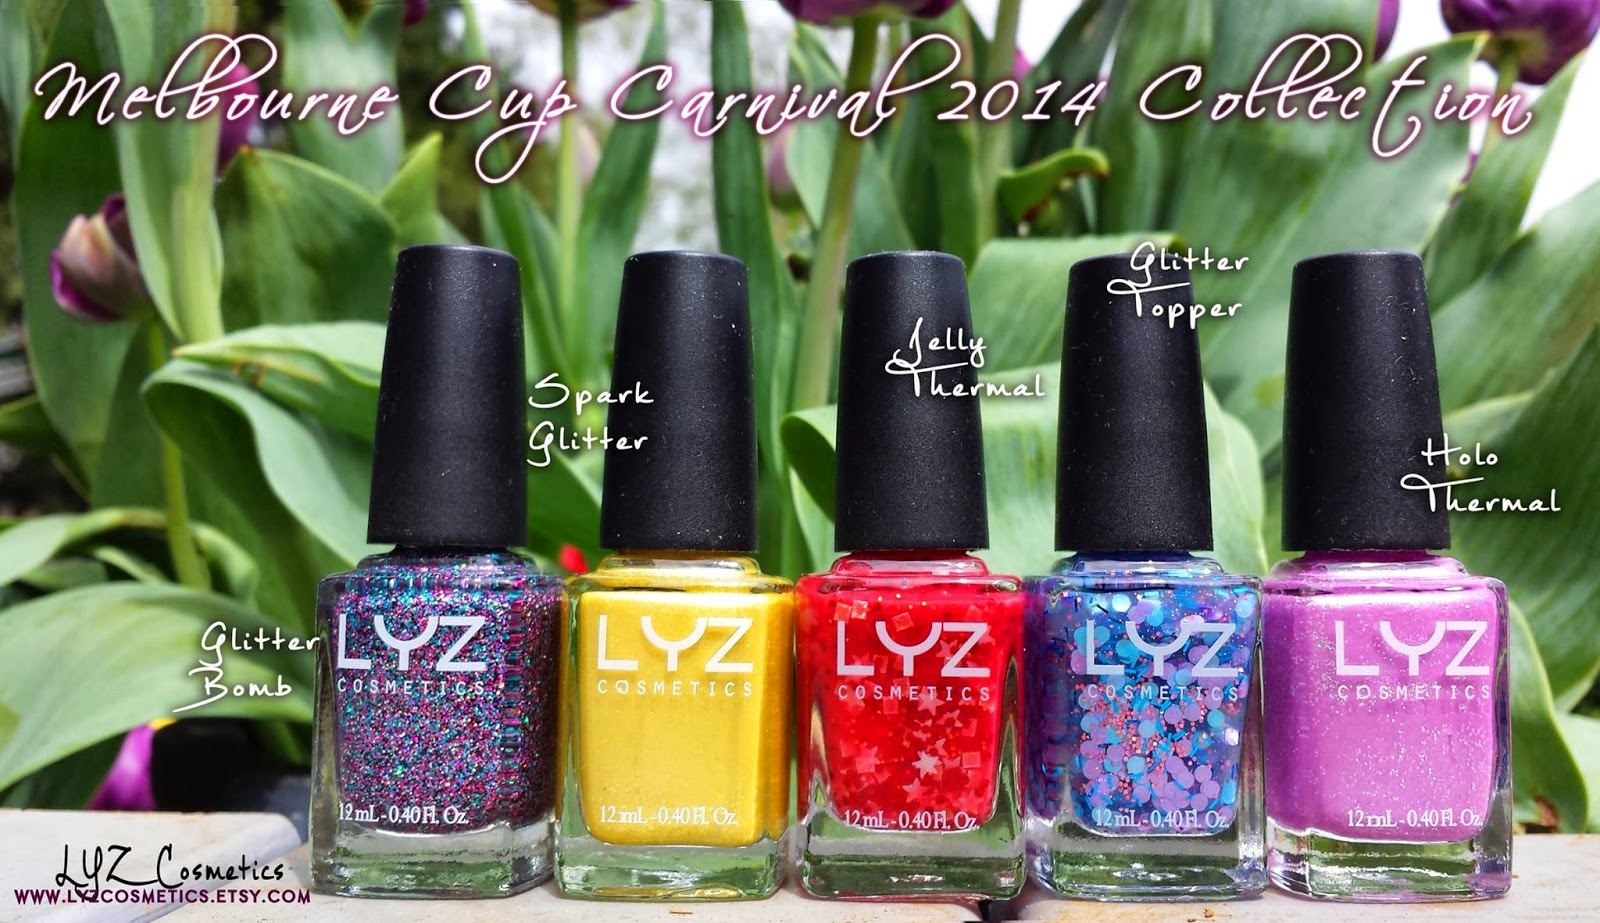 Bettina Nails: Melbourne Cup Carnival 2014 Collection by LYZ Cosmetics